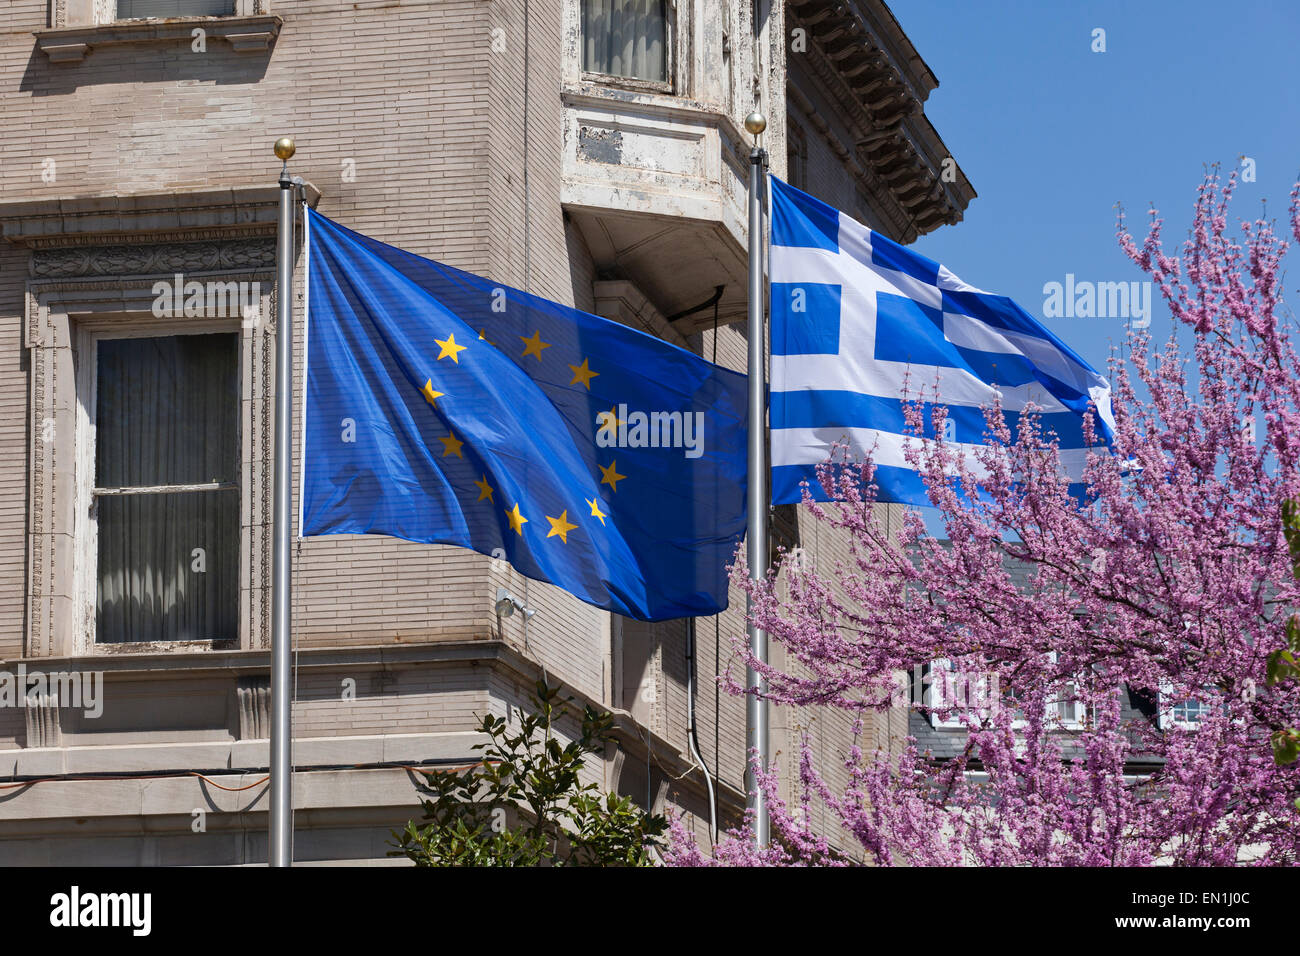 Europa and Greece flags - Stock Image